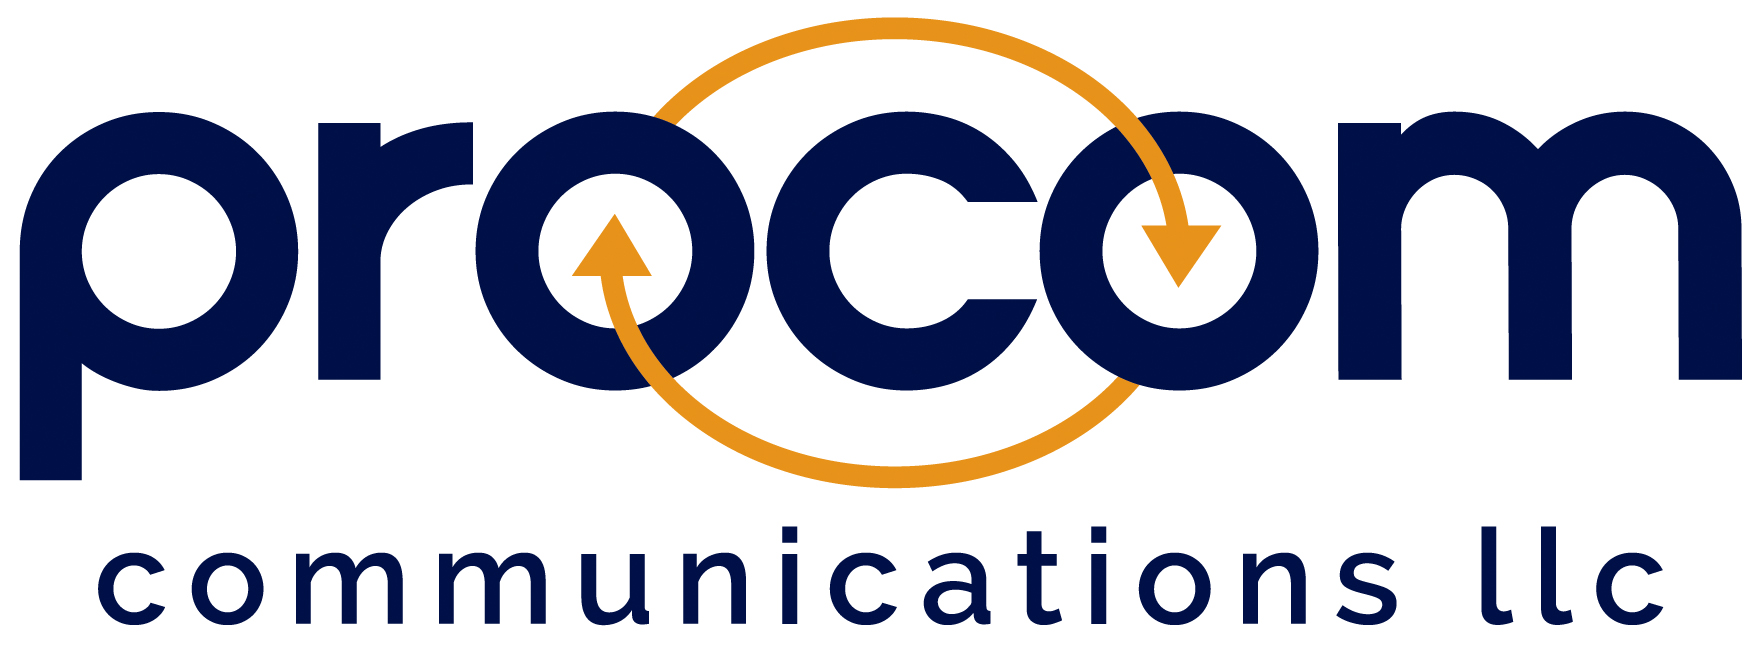 Procom Internet Communications